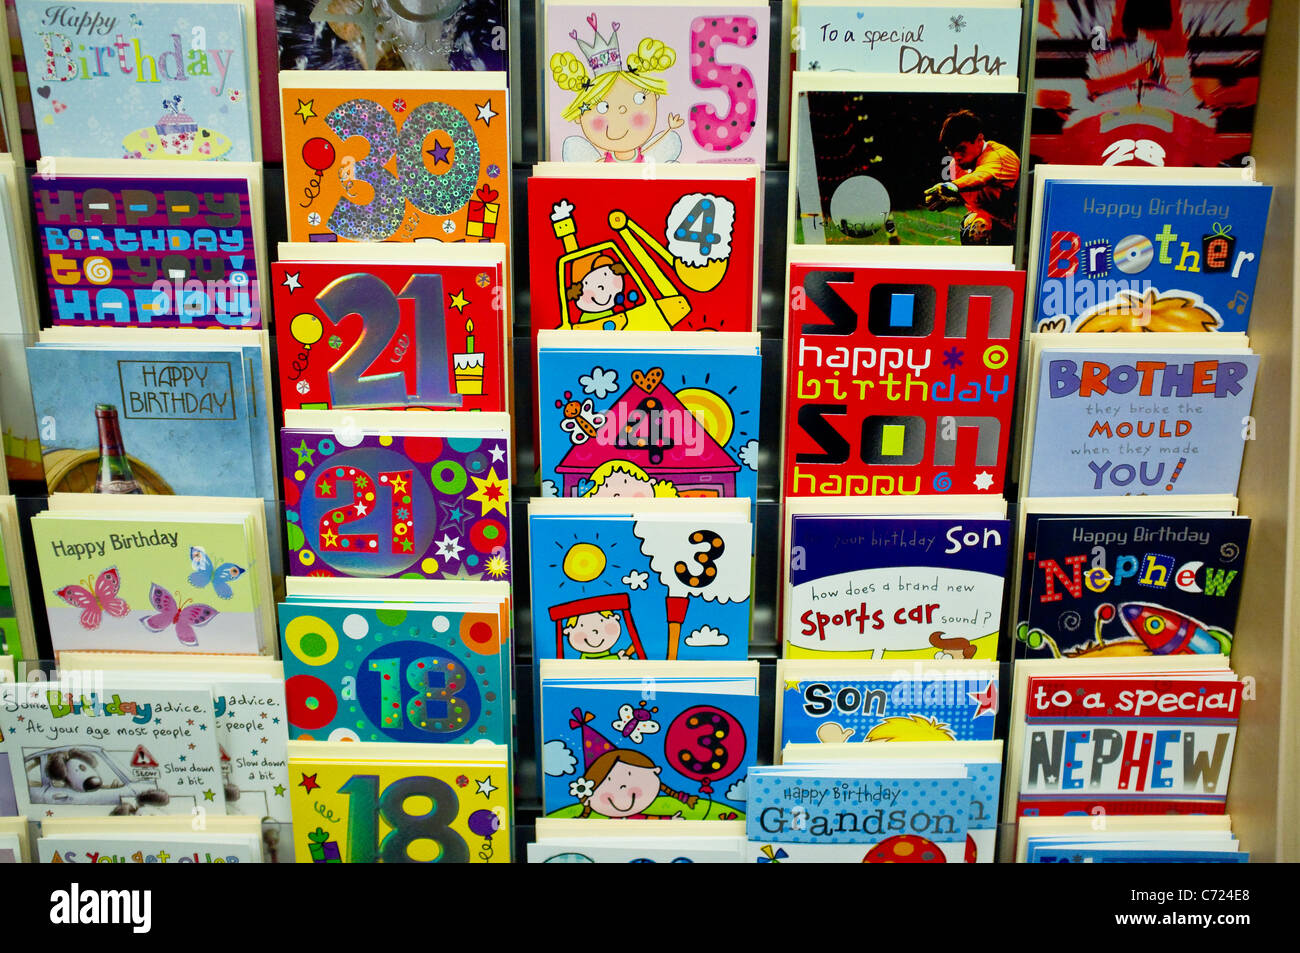 A variety of brightly coloured birthday cards on a shop display – Birthdays Card Shop Uk